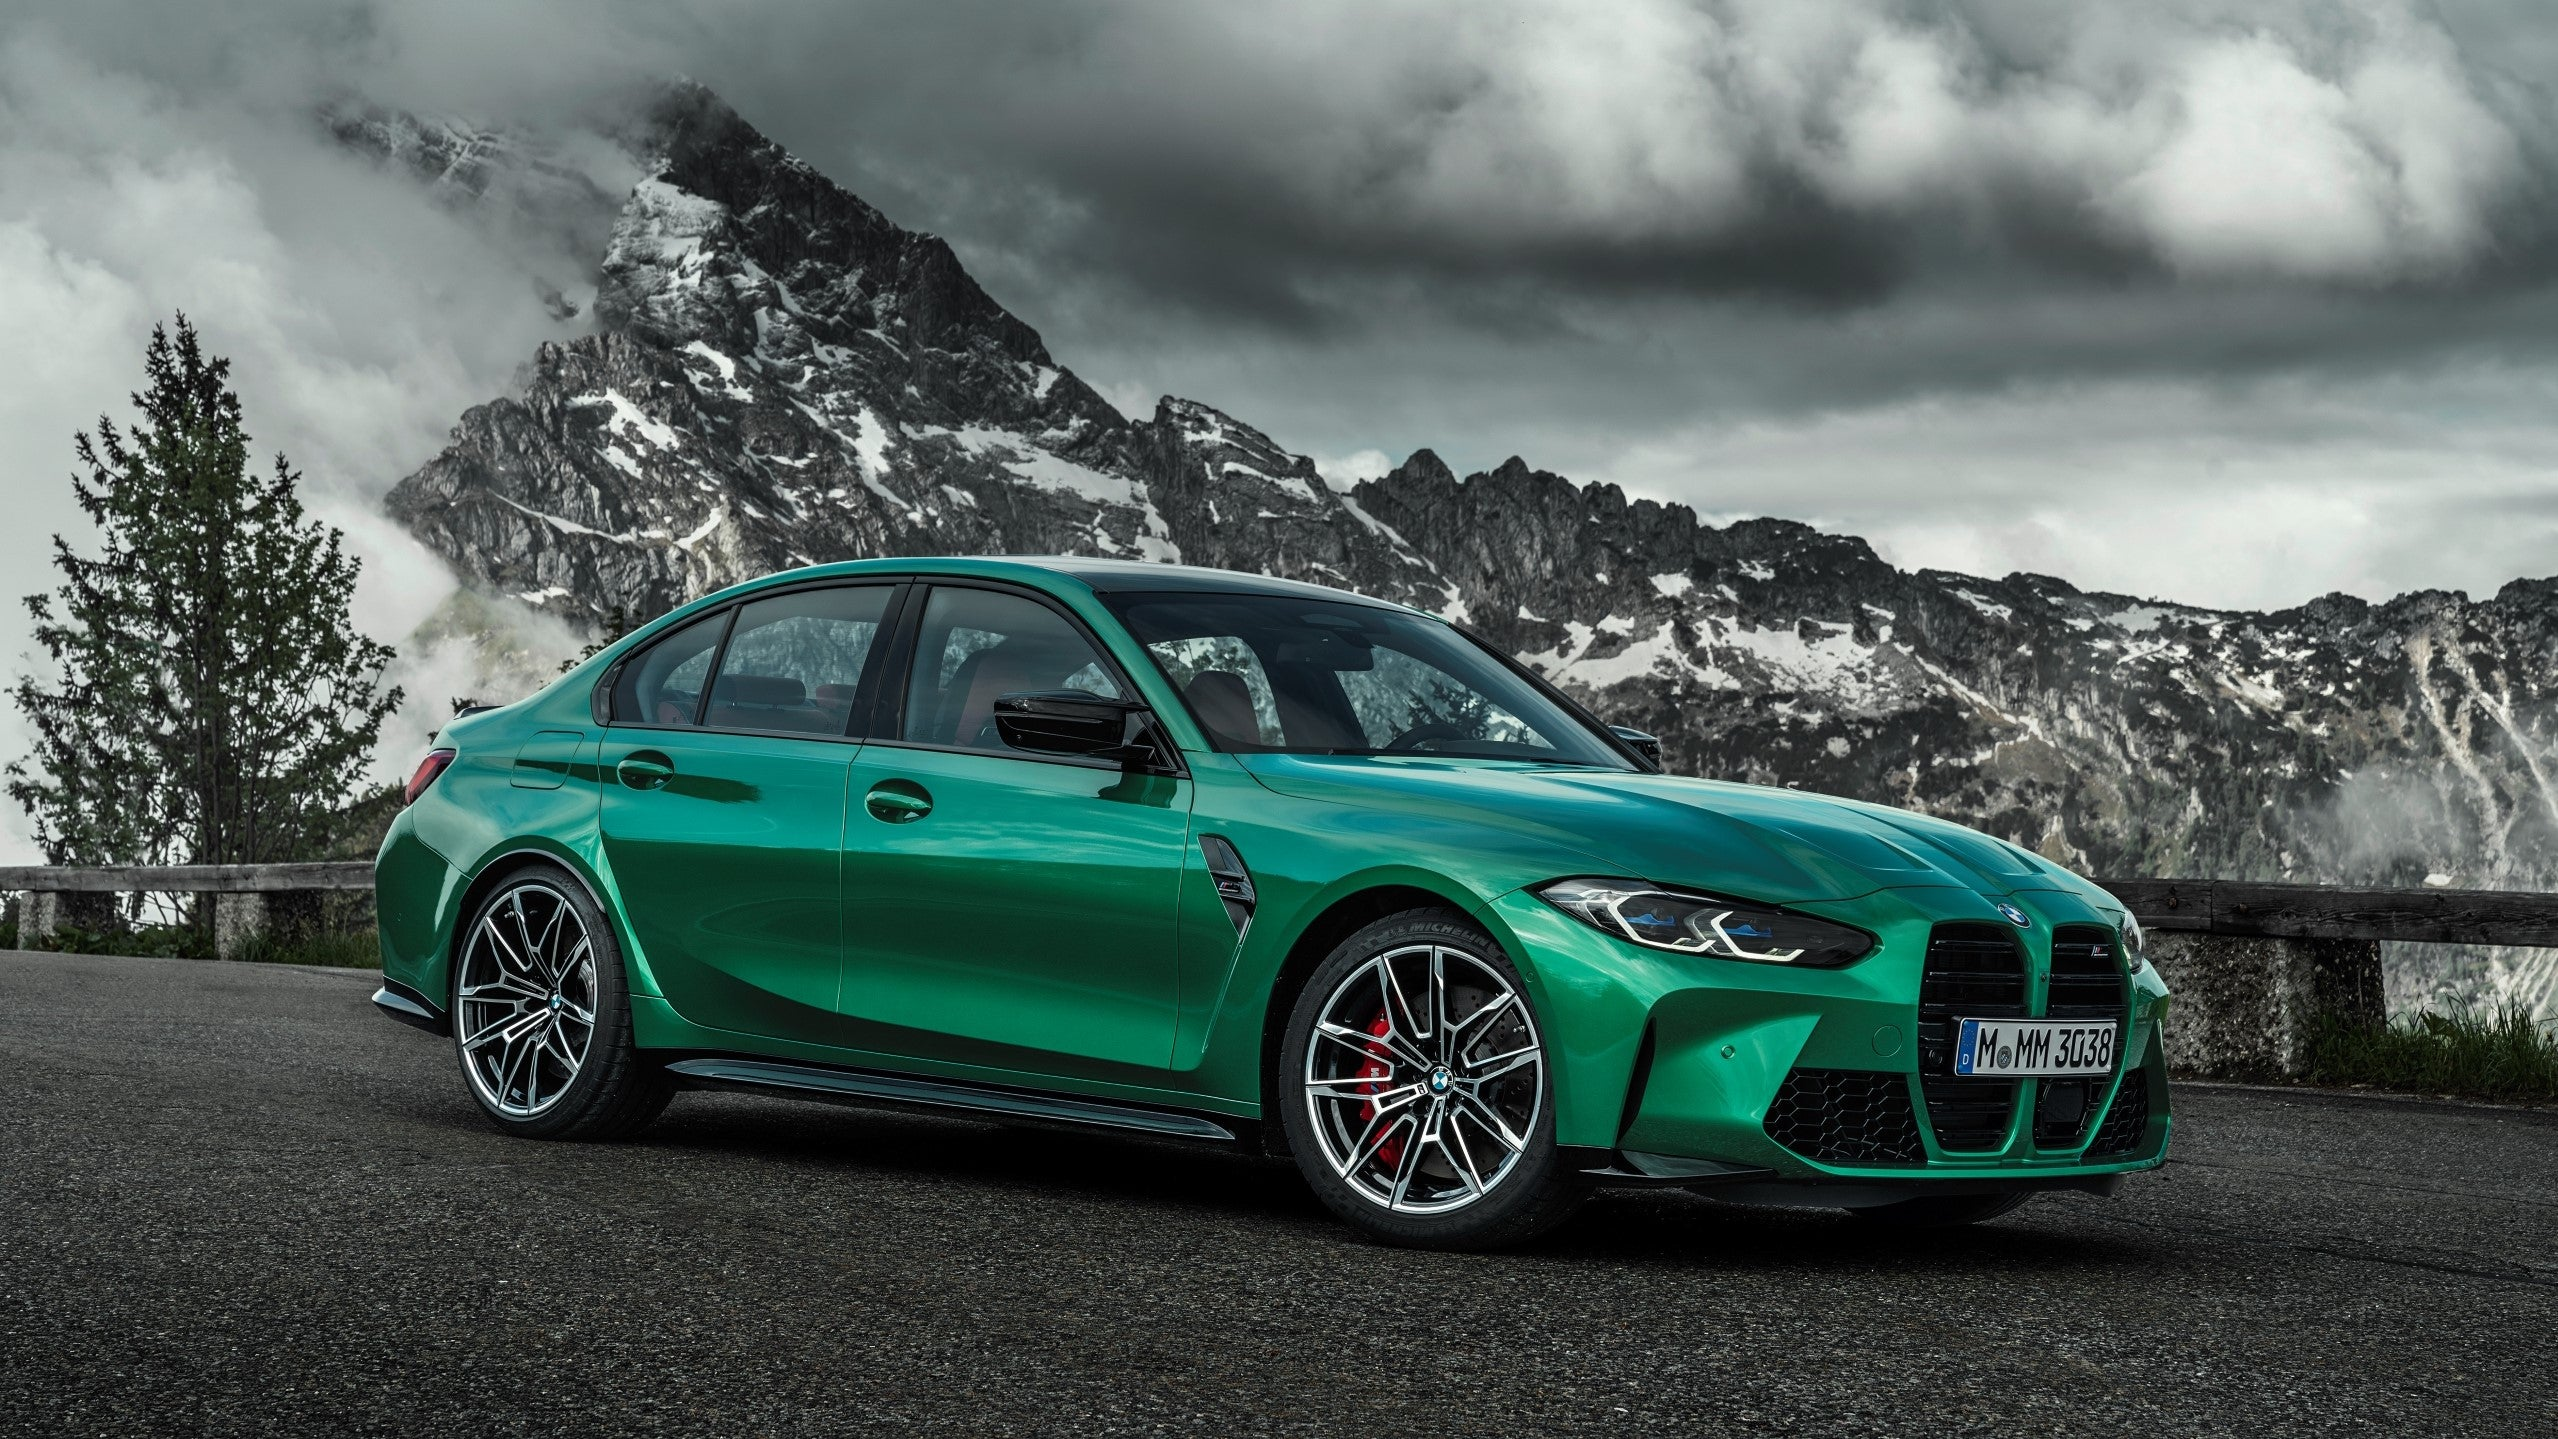 The 2021 Bmw M3 And M4 Better Be Amazing To Drive Because Damn